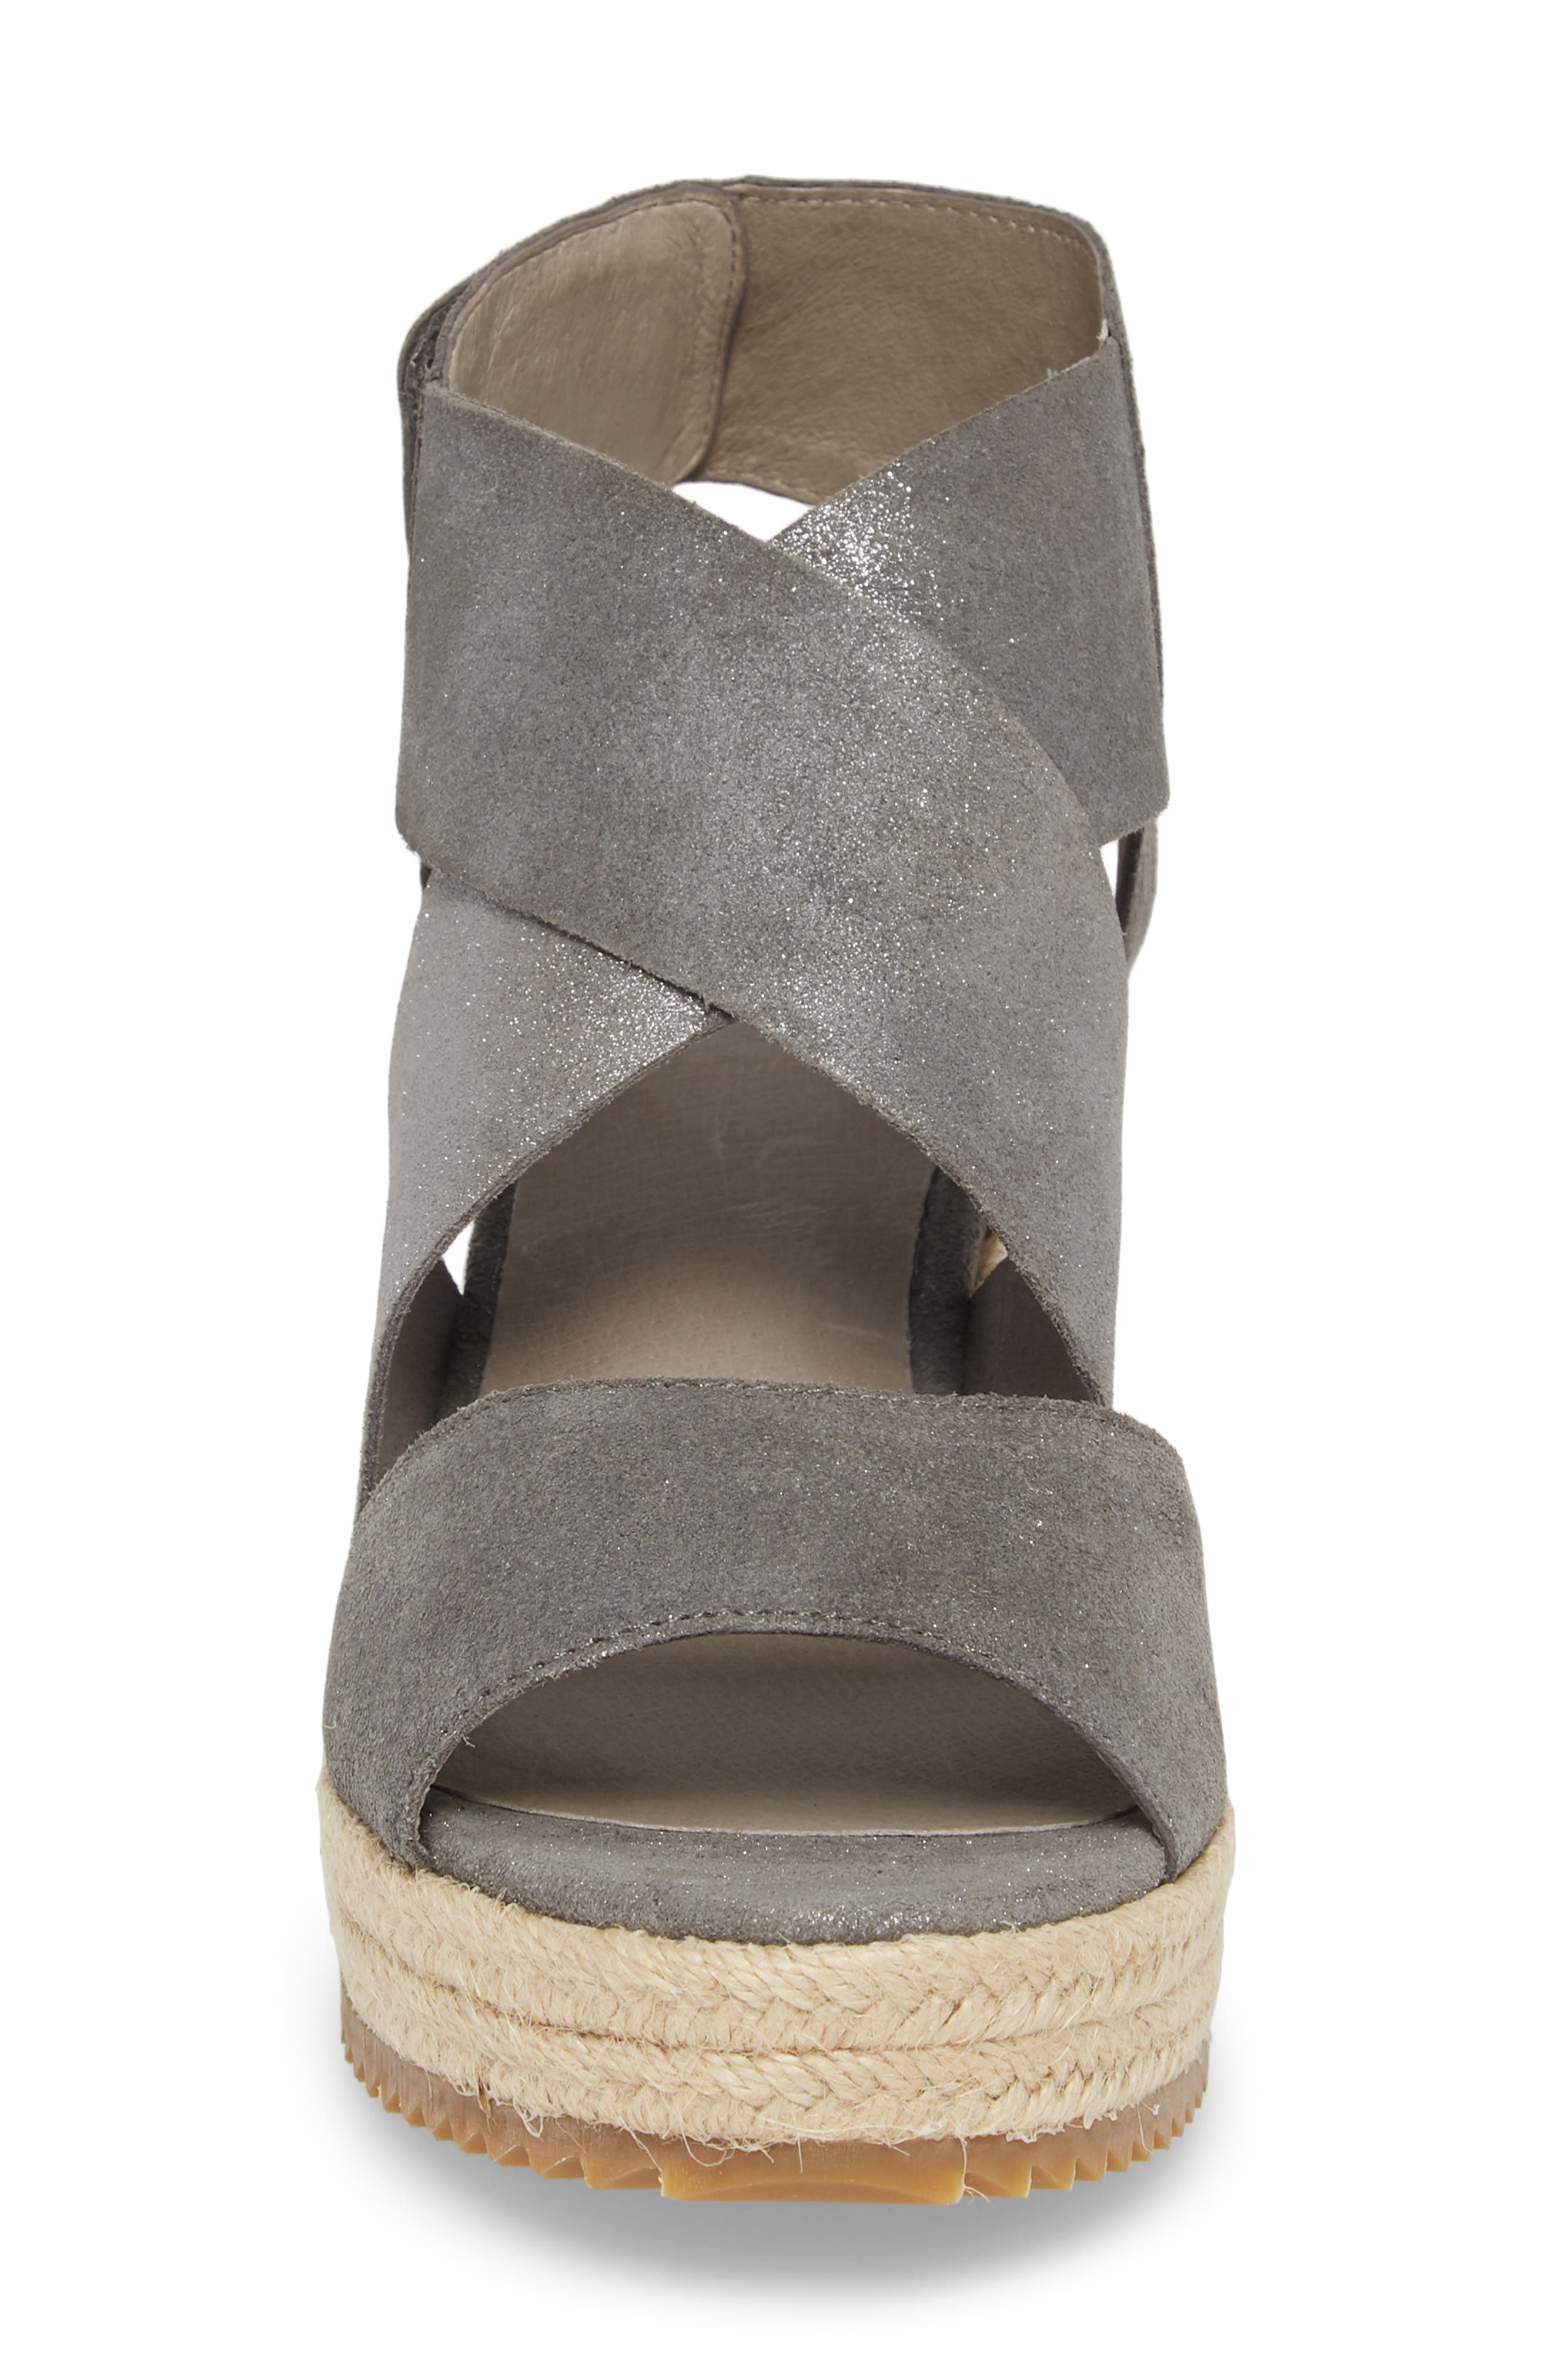 'Willow' Espadrille Wedge Sandal,                             Alternate thumbnail 4, color,                             Pewter Metallic Suede